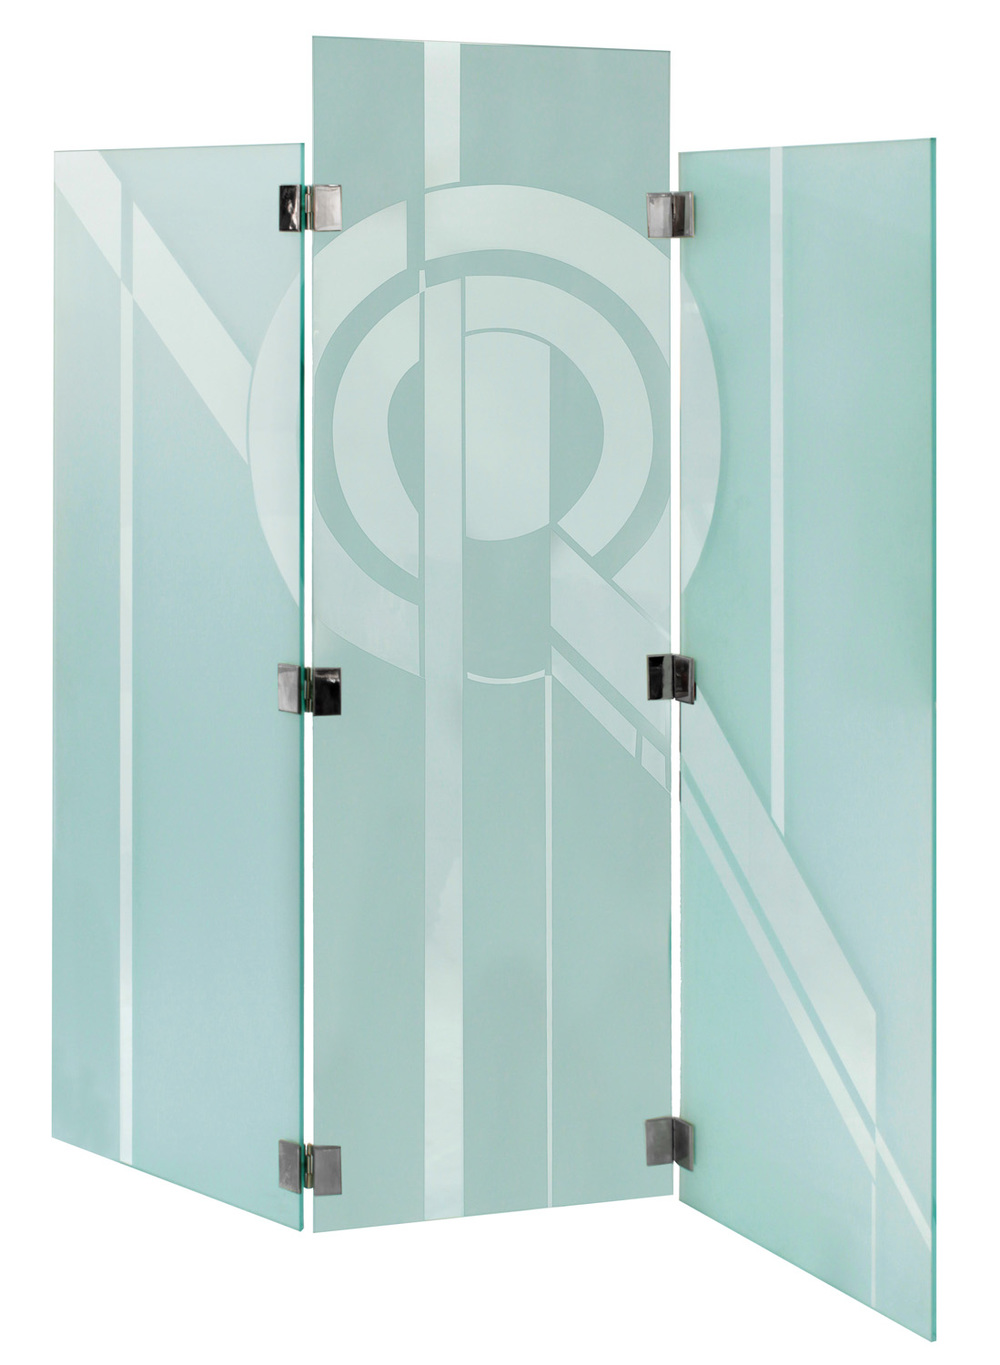 Shultz 85 etched 3 panel glass screen14 hires.jpg